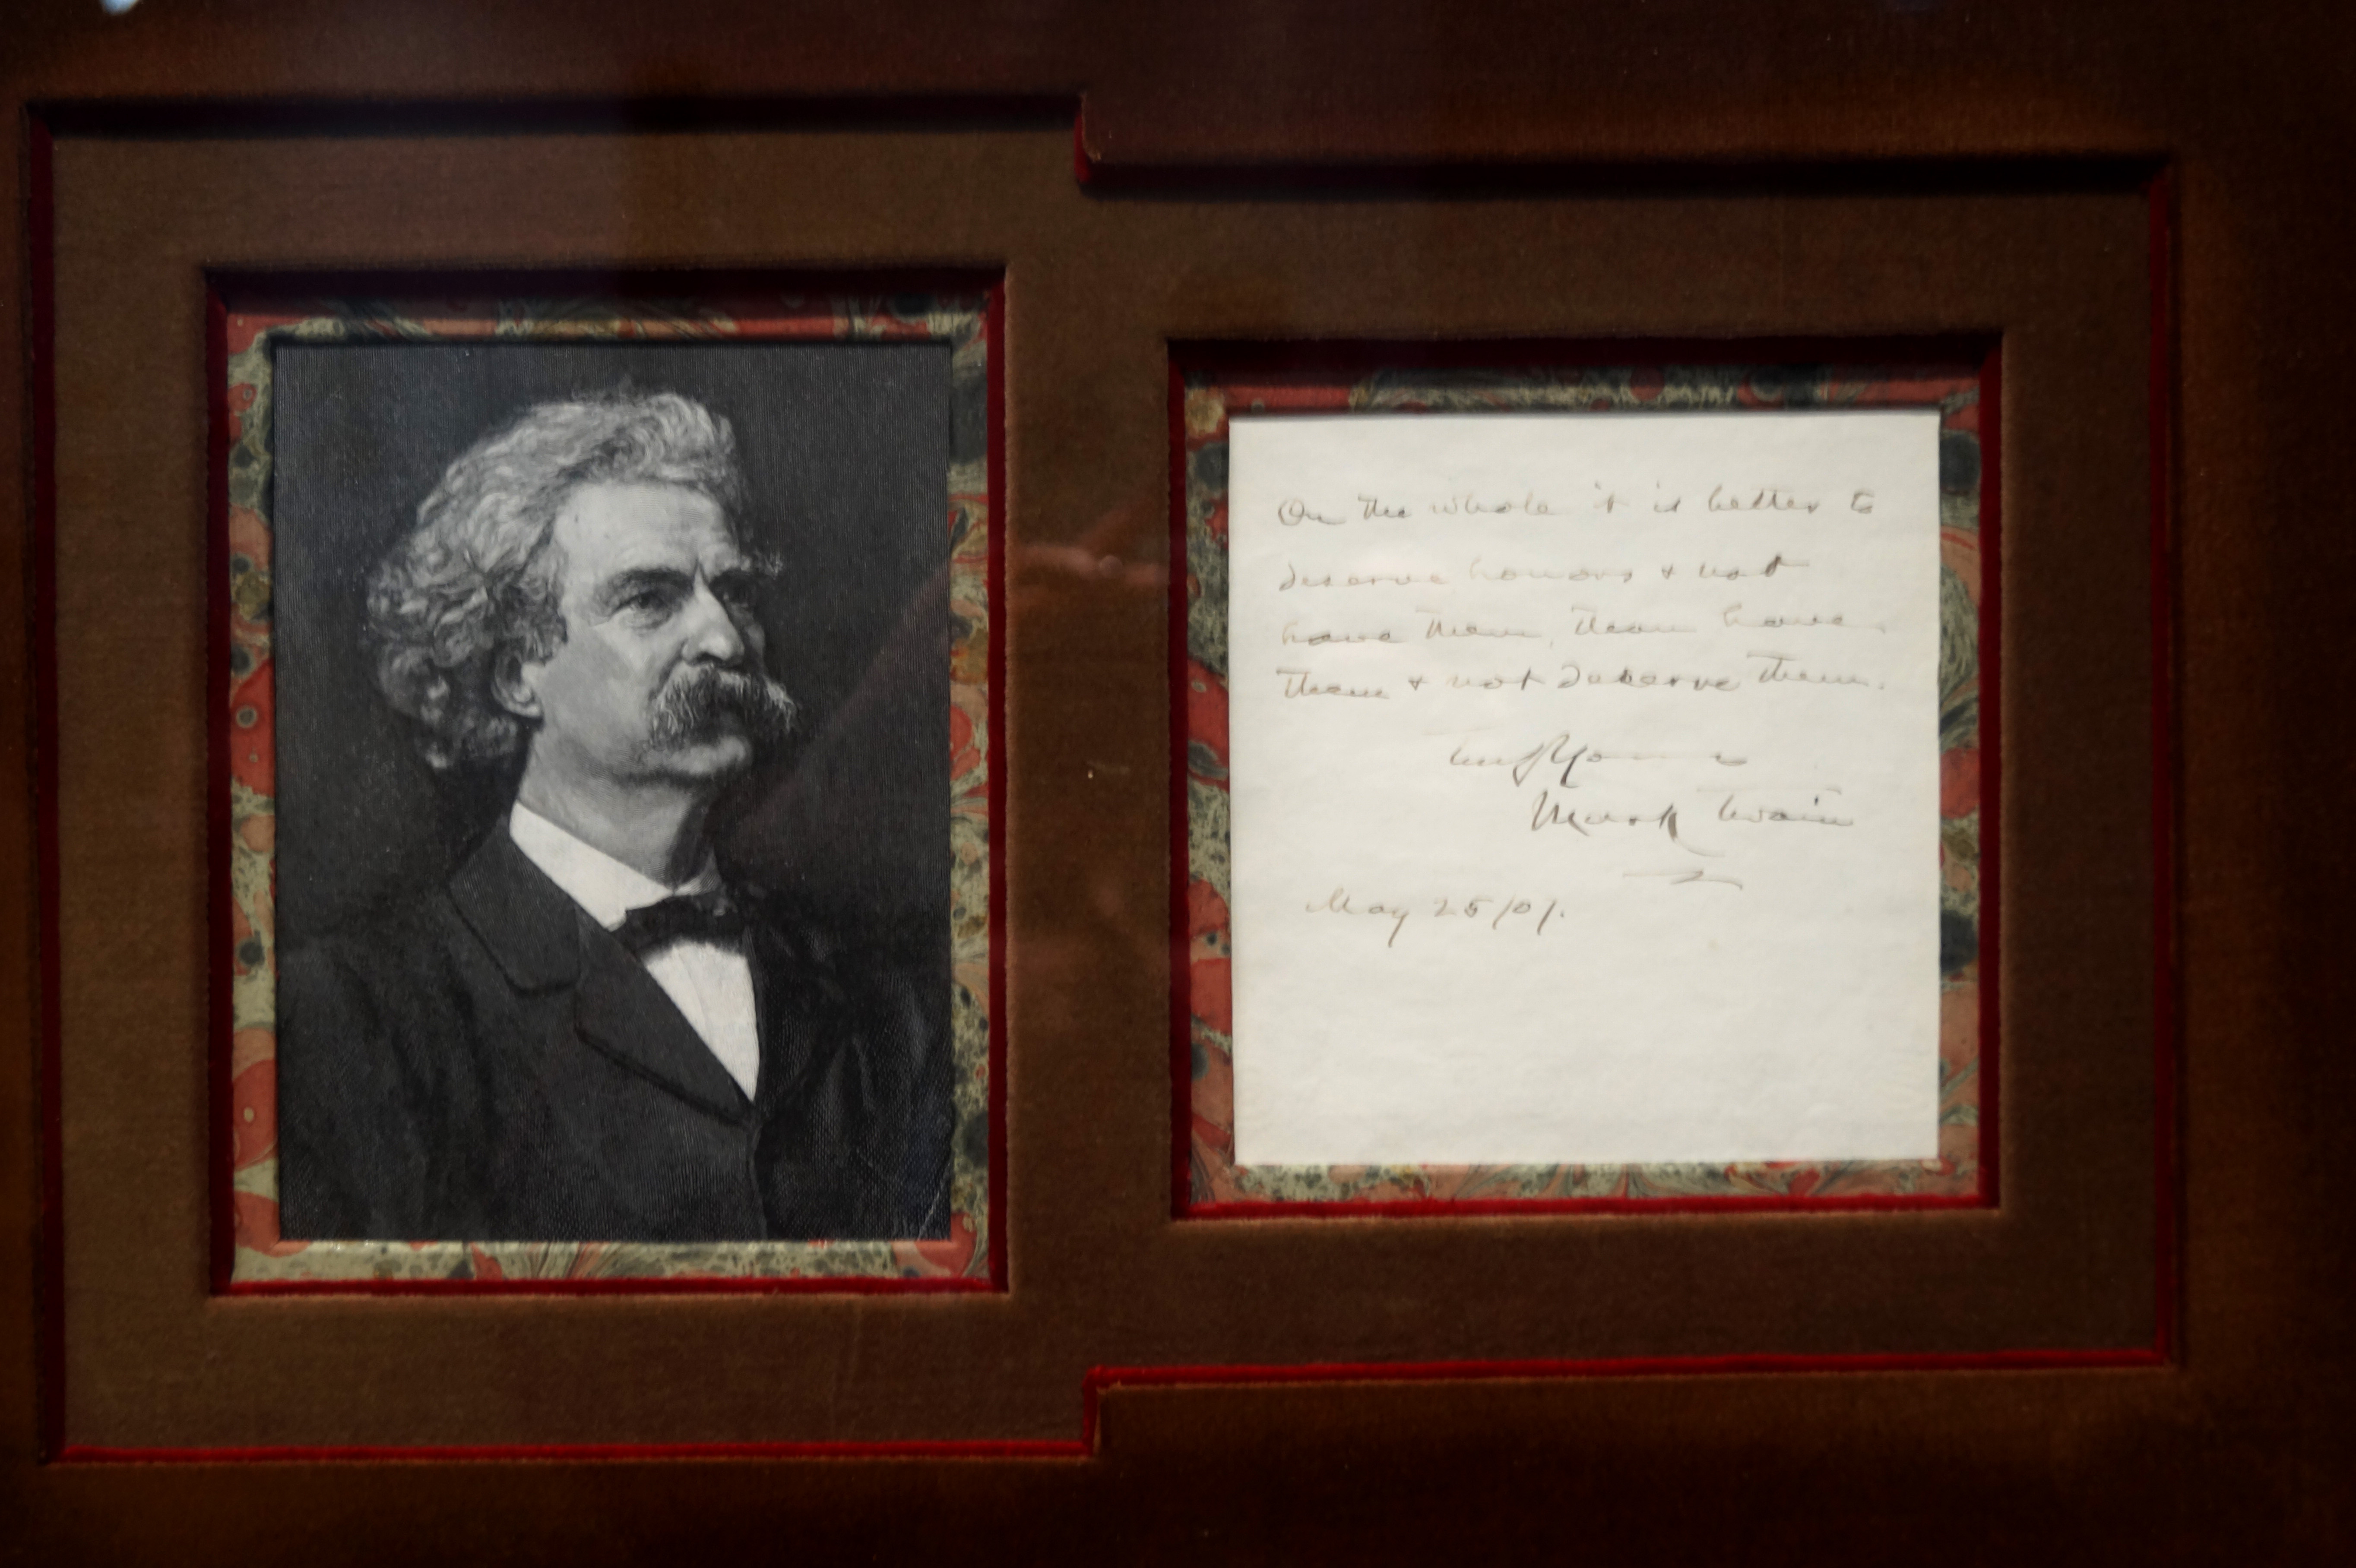 """This handwritten maxim is an example of an inscription Clemens might have written on the flyleaf of a book he was gifting to a family member or friend.   """"On the whole it is better to deserve honors and not have them, than to have them but not deserve them.  Truly Yours  Mark Twain May 25/07"""""""